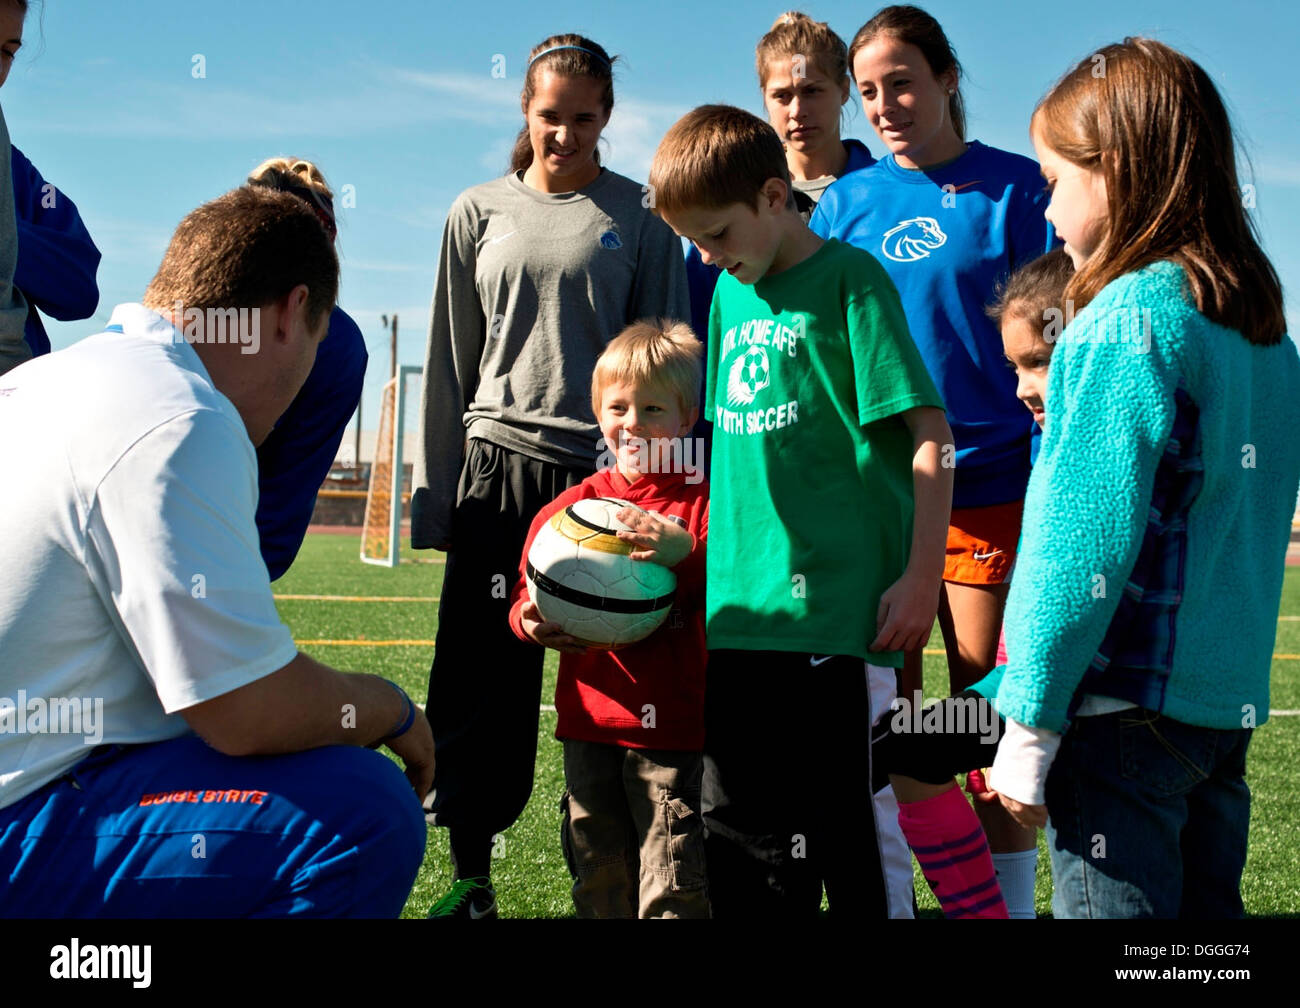 Ed Moore, Boise State University ladies soccer team assistant coach, shows base children how to pass with the inside of their cleats during a soccer clinic for military families at Mountain Home Air Force Base, Idaho, Oct. 5, 2013. The Broncos visited bas - Stock Image